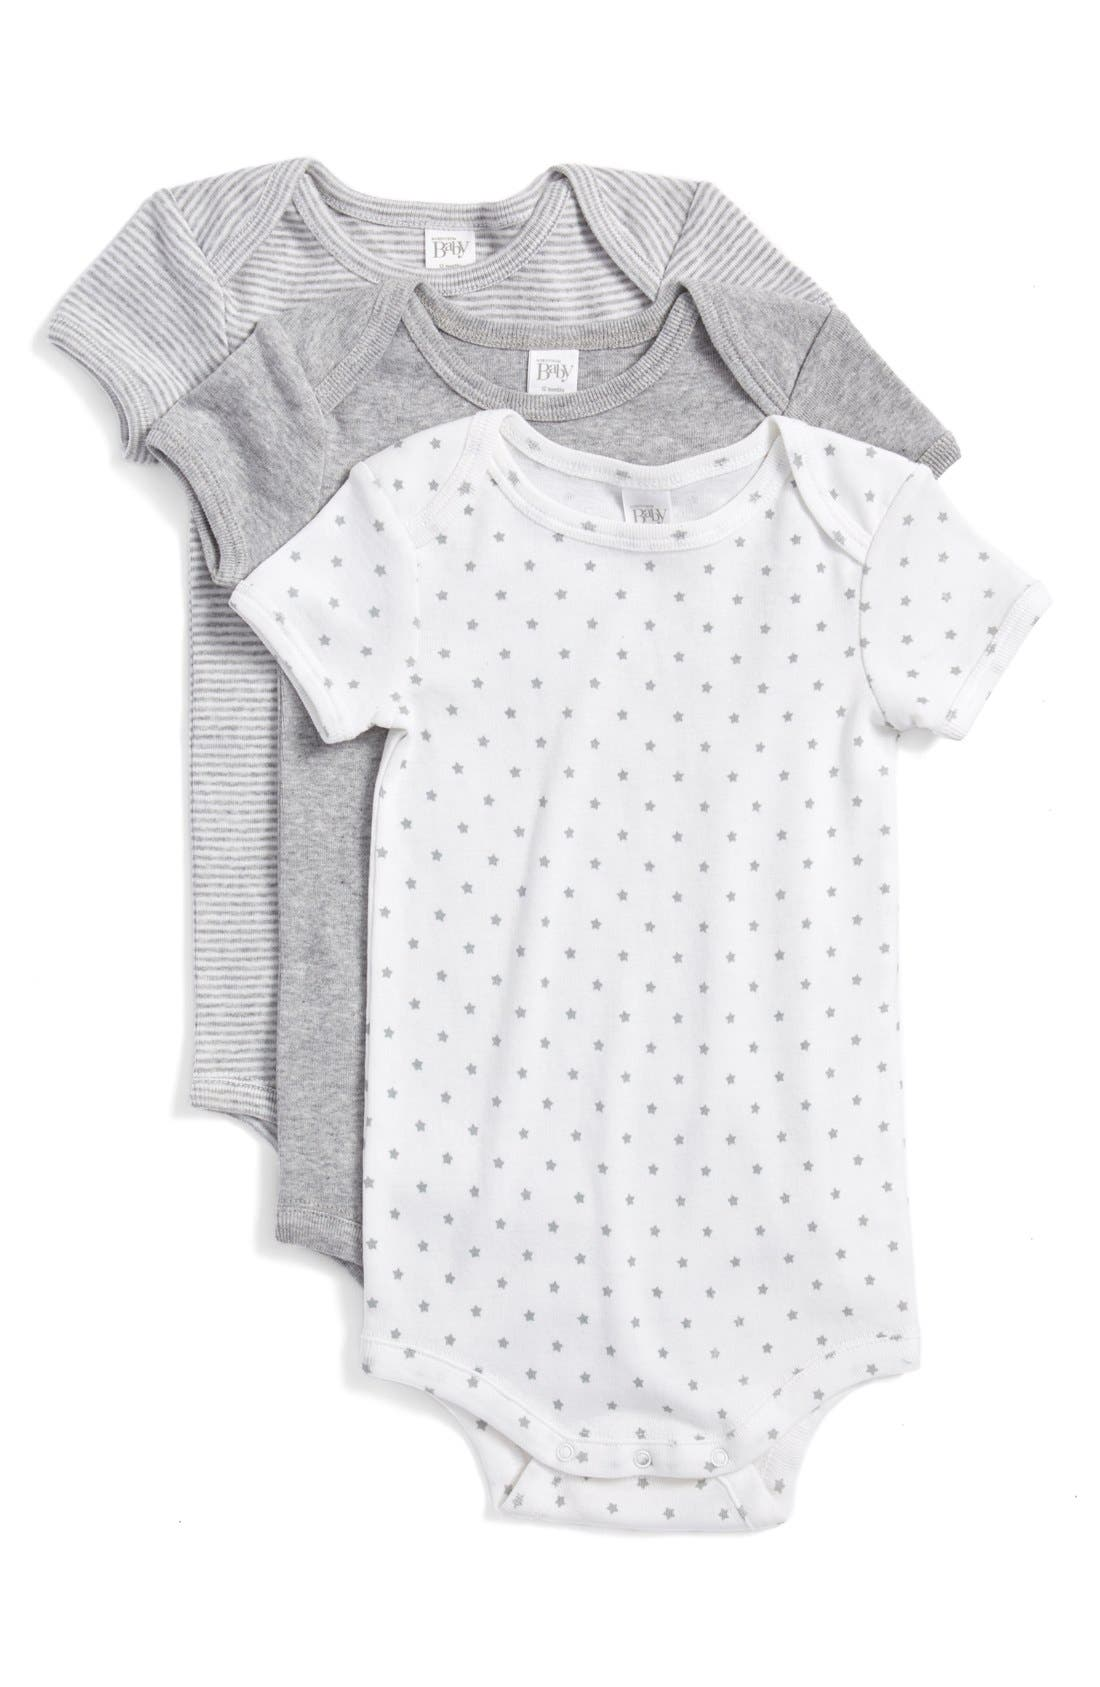 Alternate Image 1 Selected - Nordstrom Baby Cotton Bodysuits (3-Pack) (Baby)